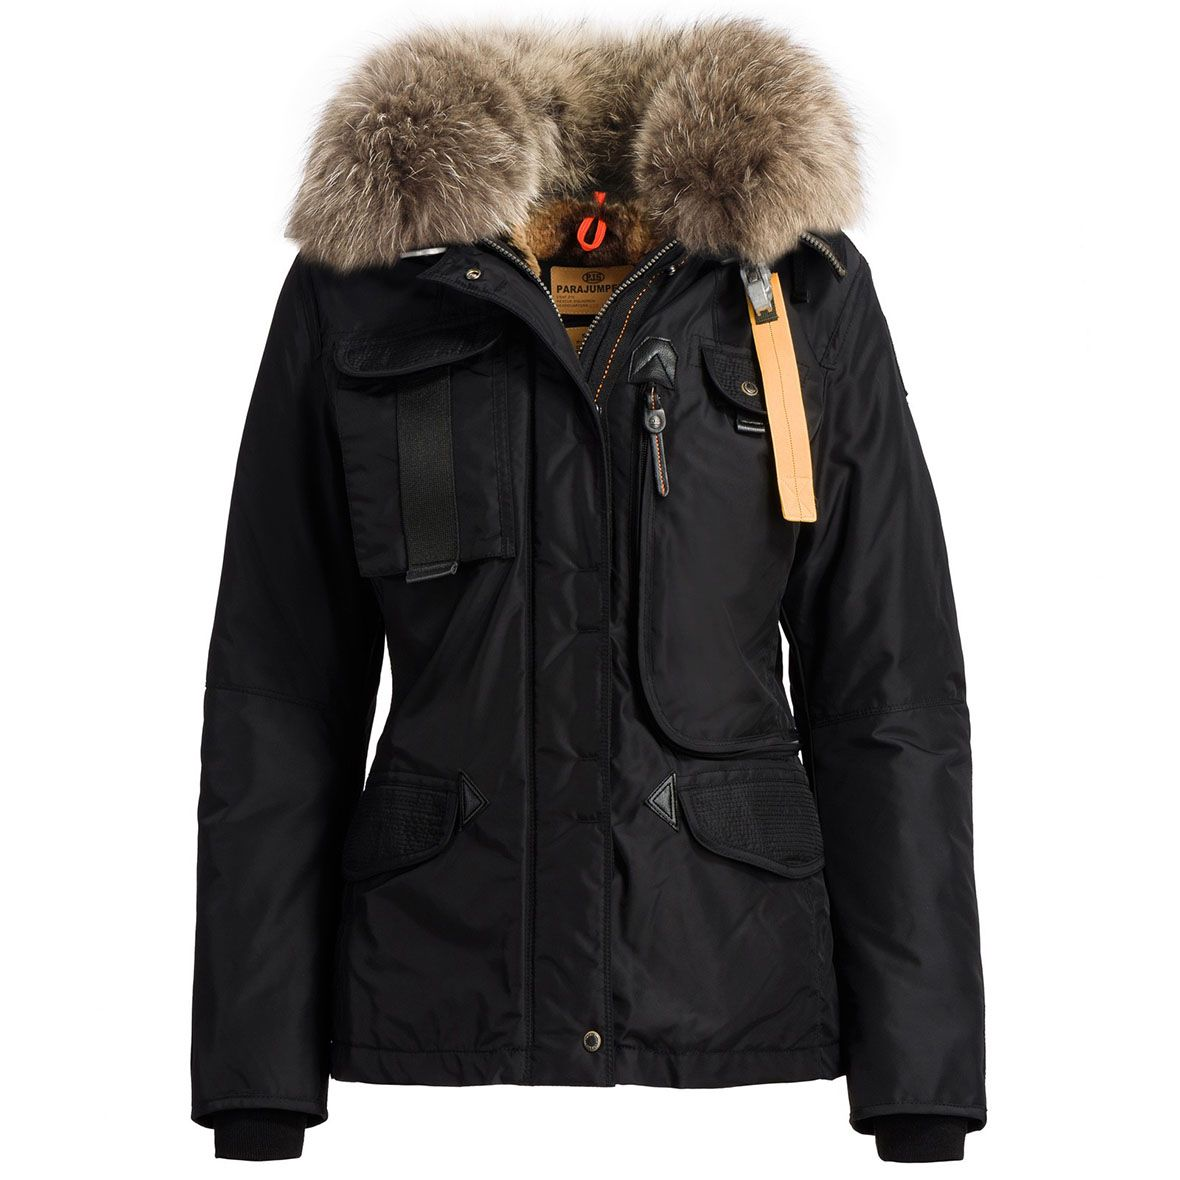 Parajumpers, Women's Denali Jacket - SportingLife Online Store